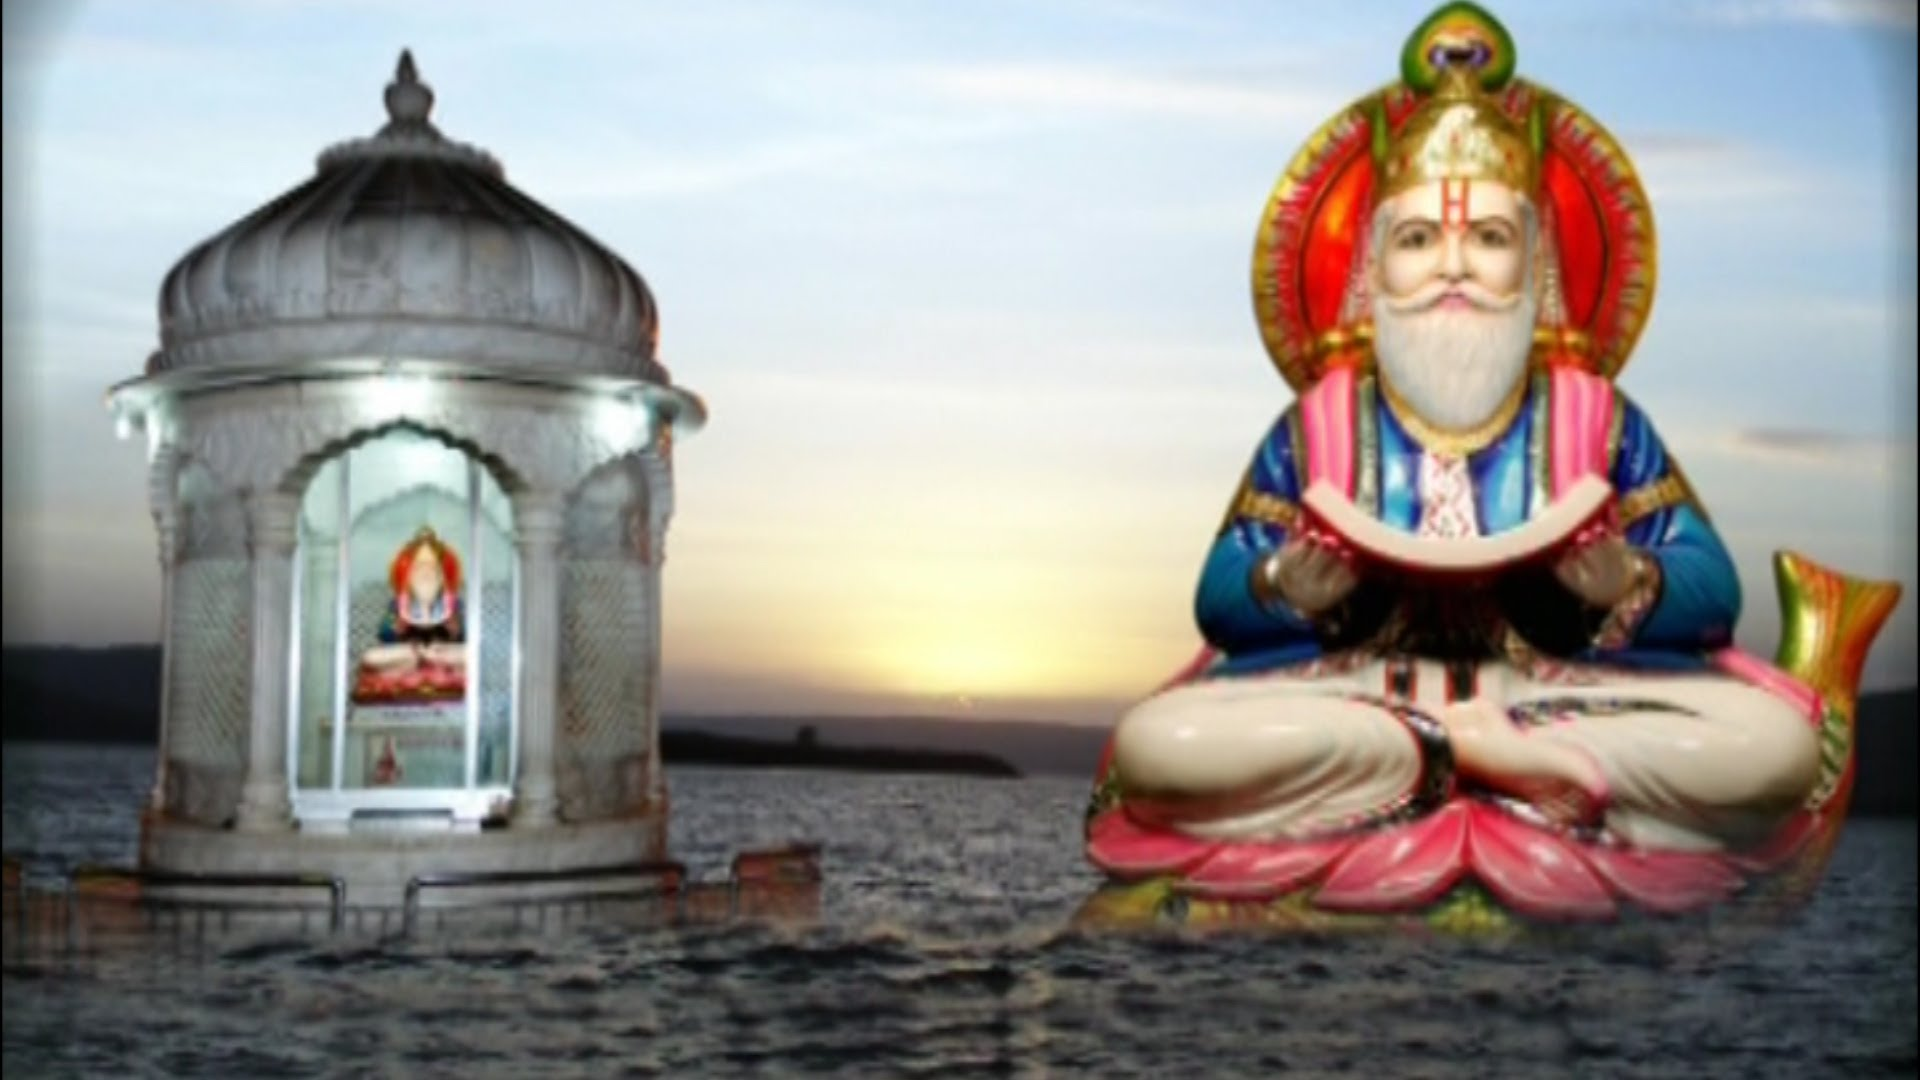 cheti chand images and wallpapers